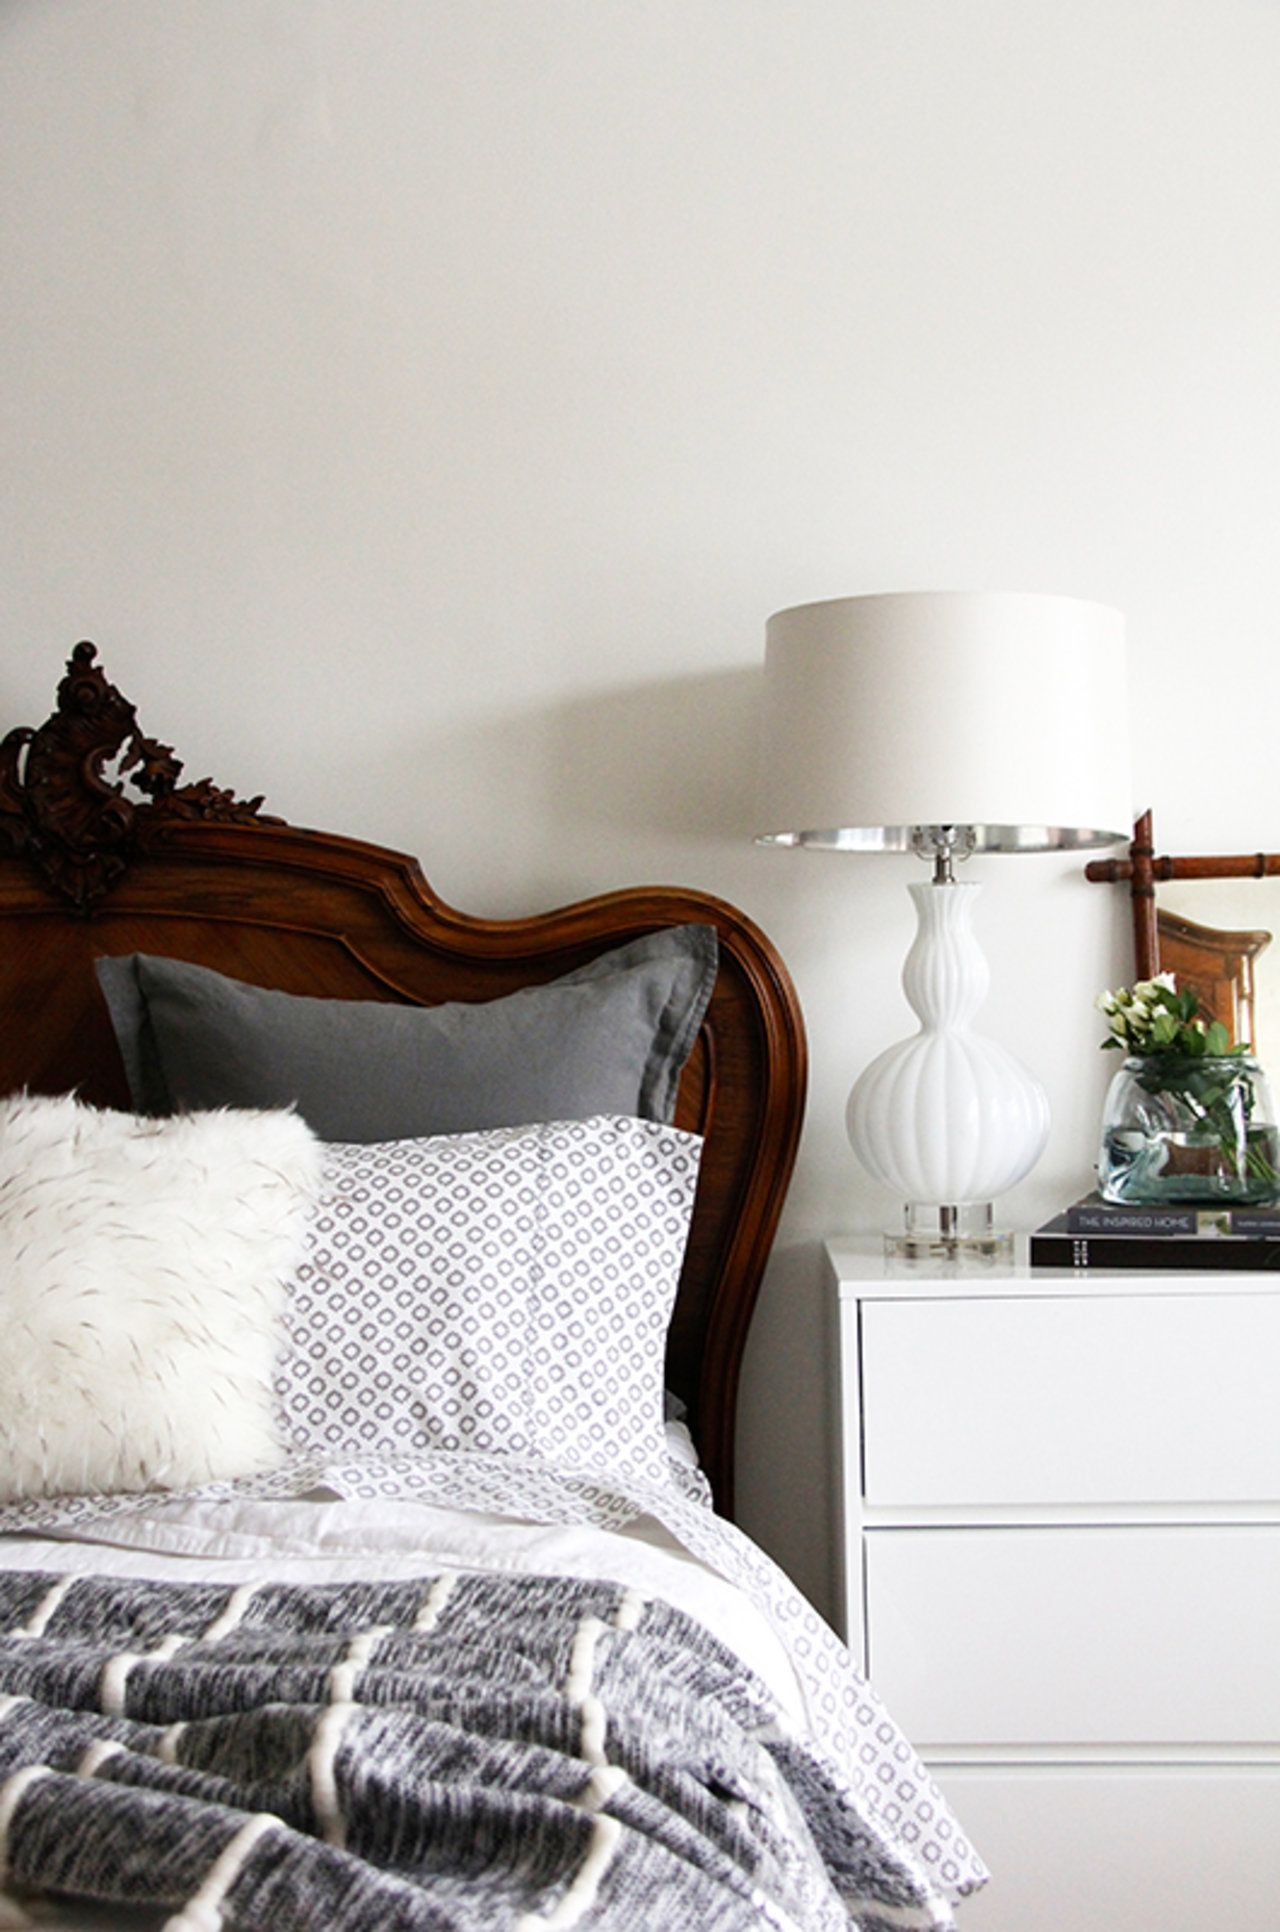 5 Key Home Items NOT to Leave